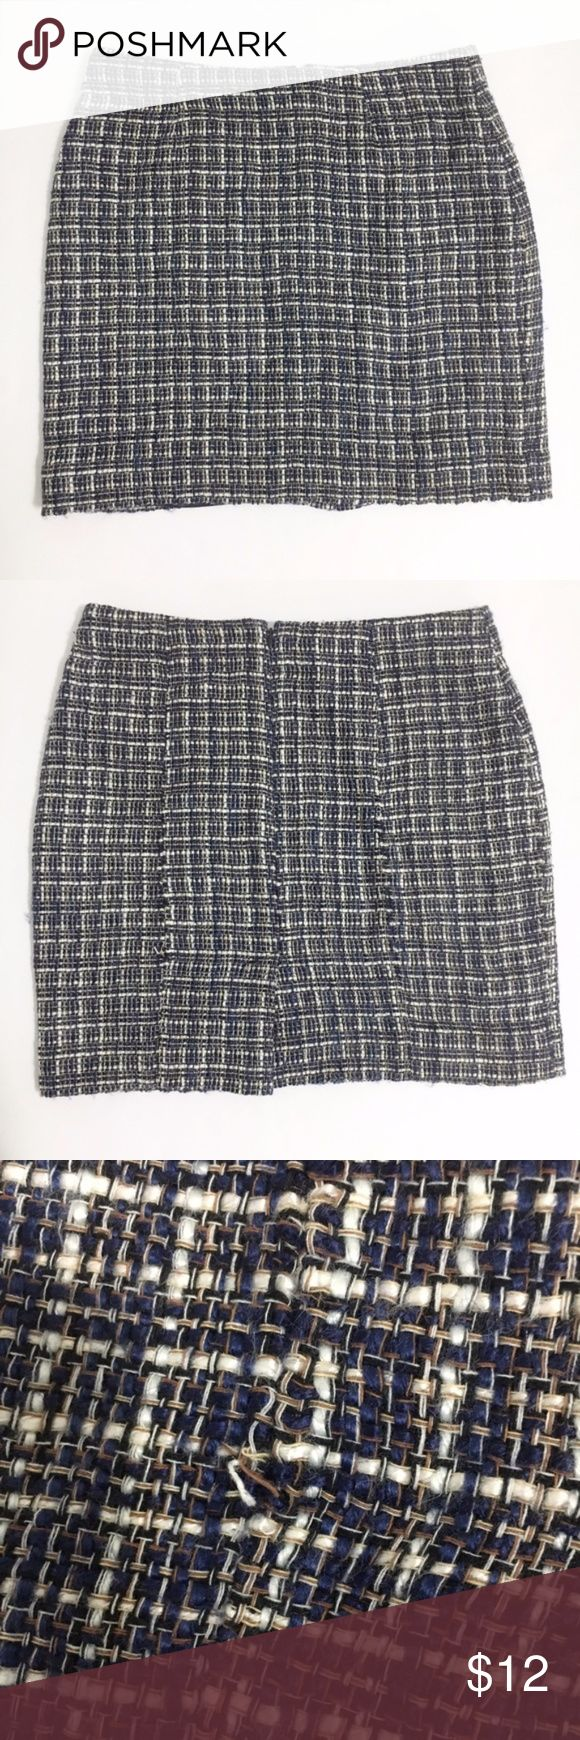 Banana Republic Checkered Pencil Skirt Size 6 Banana Republic Checkered Pencil Skirt Size 6  Dark blue and white woven checkered pencil skirt from Banana Republic. Zip closure down the back with a small slit on the back. Fully lined. Used in excellent condition, one small tear (pictured). Size 6.  Fabric Content: - Shell: 60% acrylic, 40% cotton - Lining: 95% polyester, 5% elastane Banana Republic Skirts Pencil